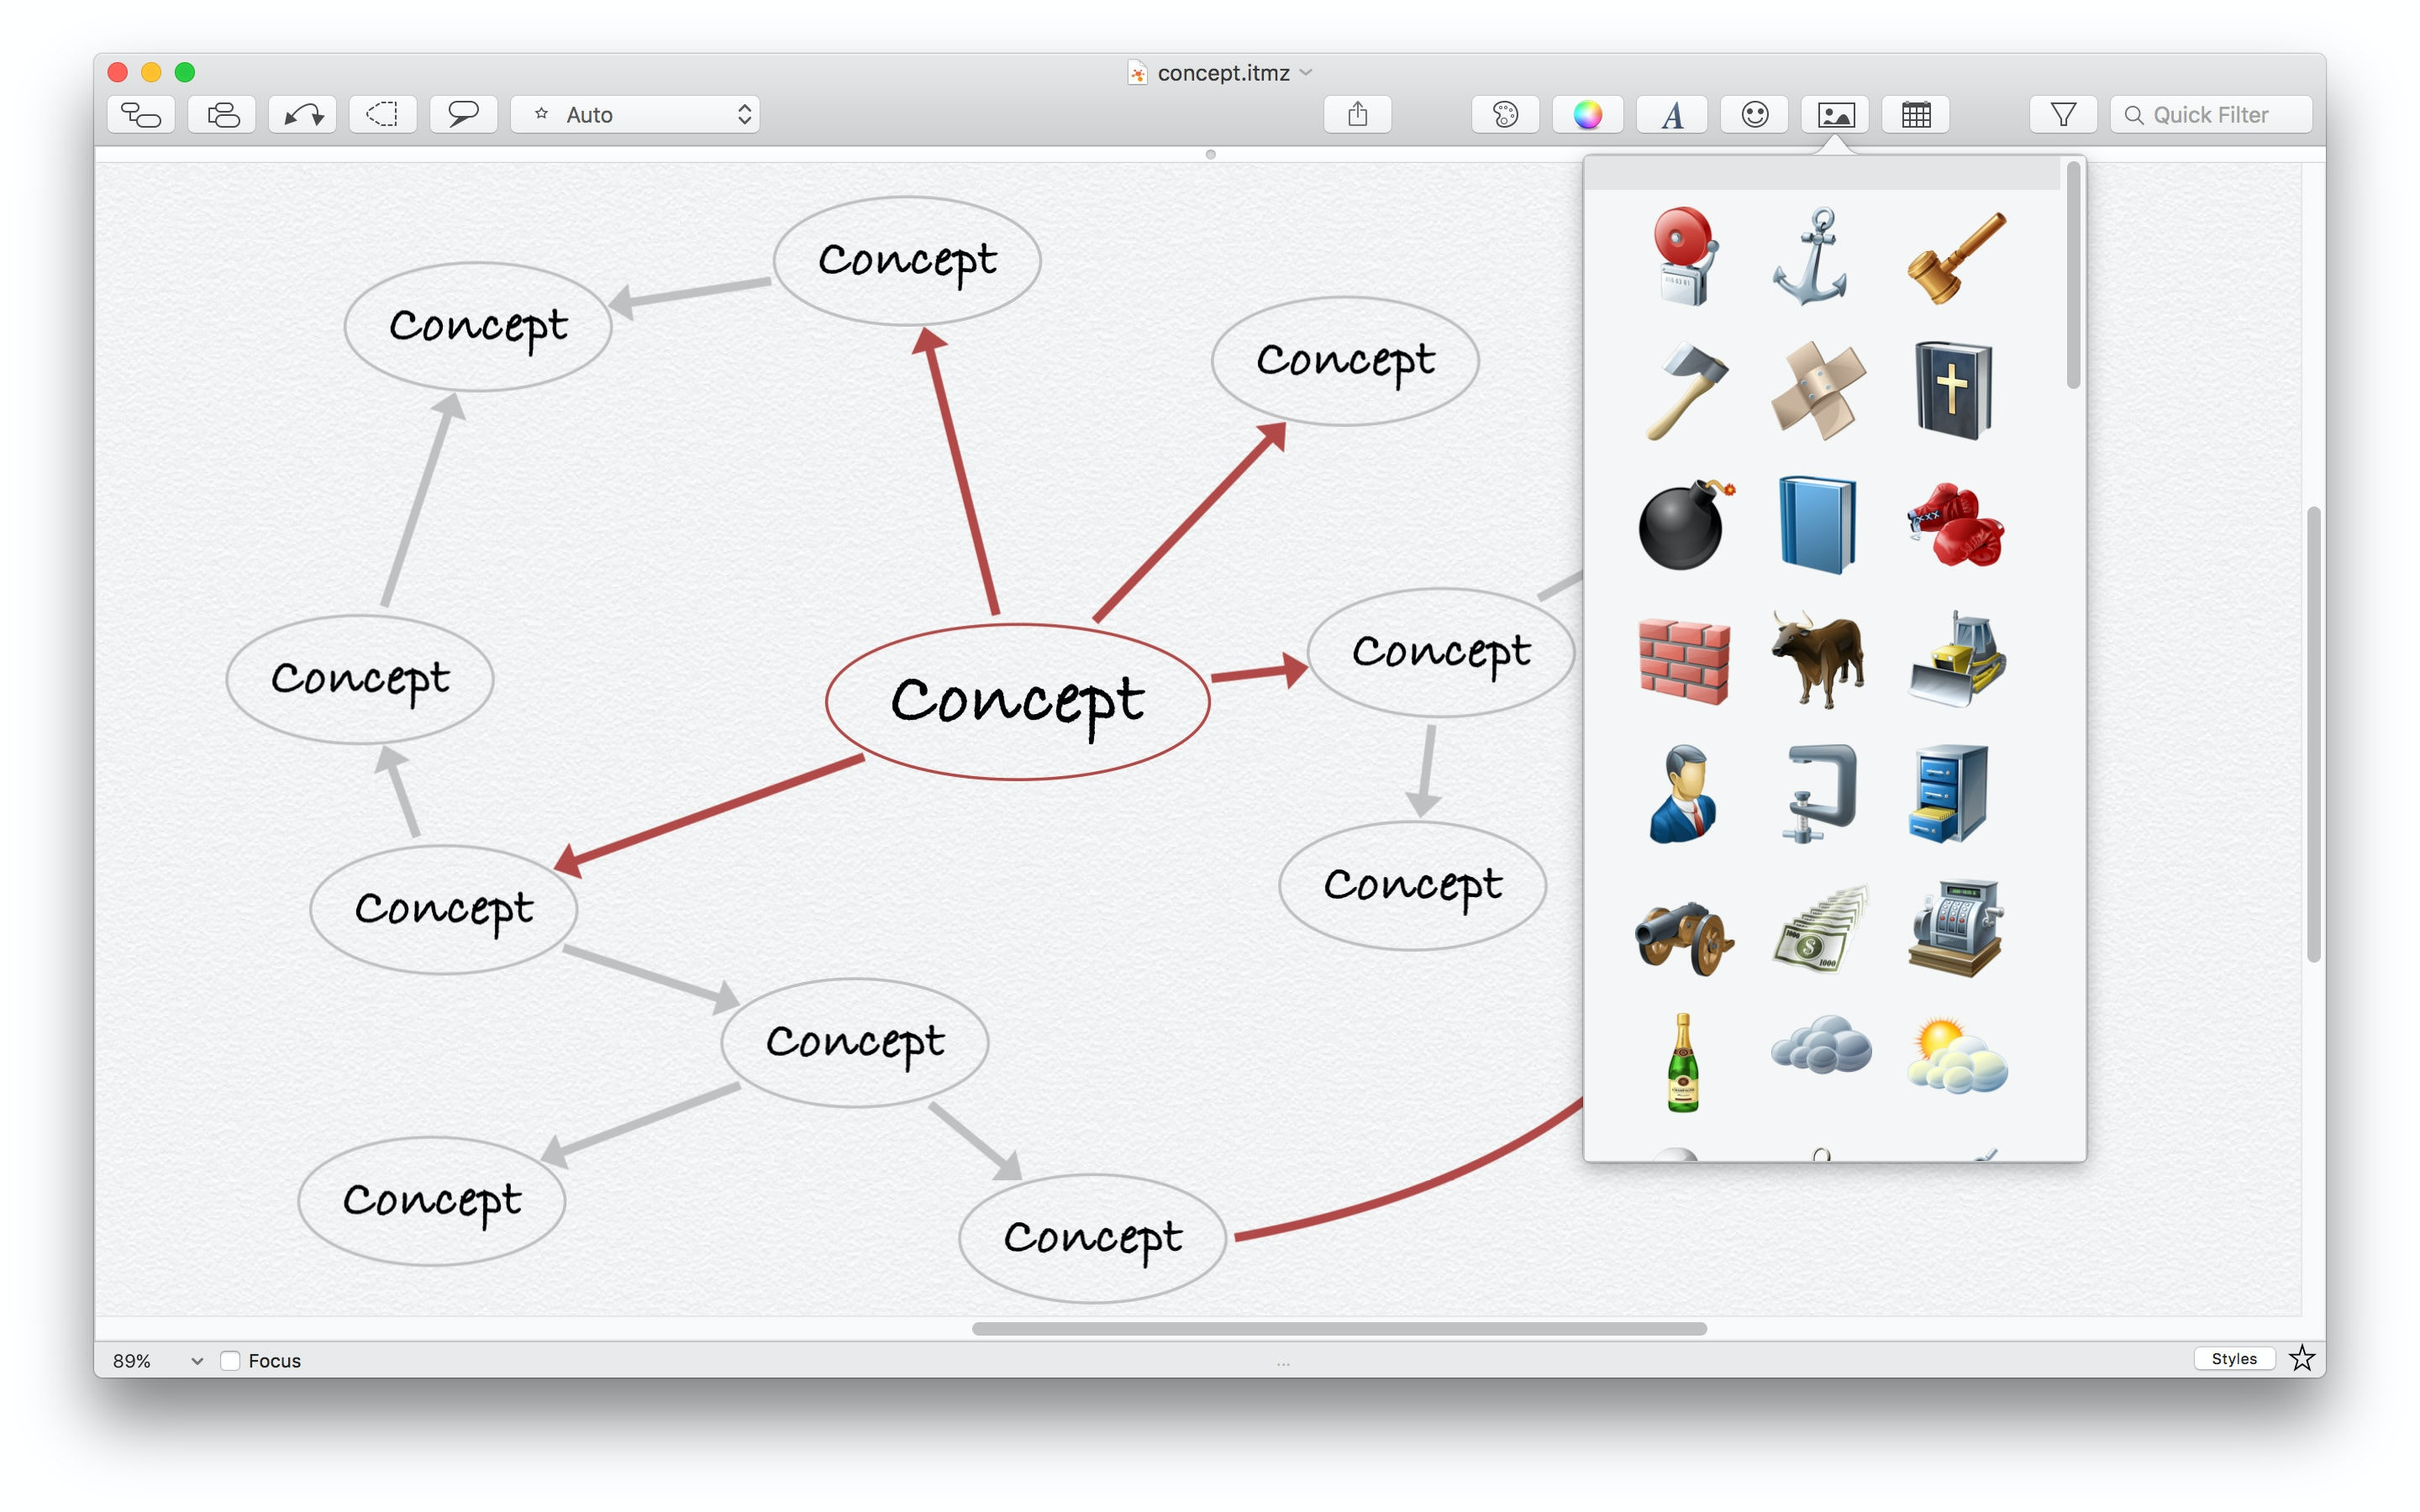 Advanced mindmap features and patterns.